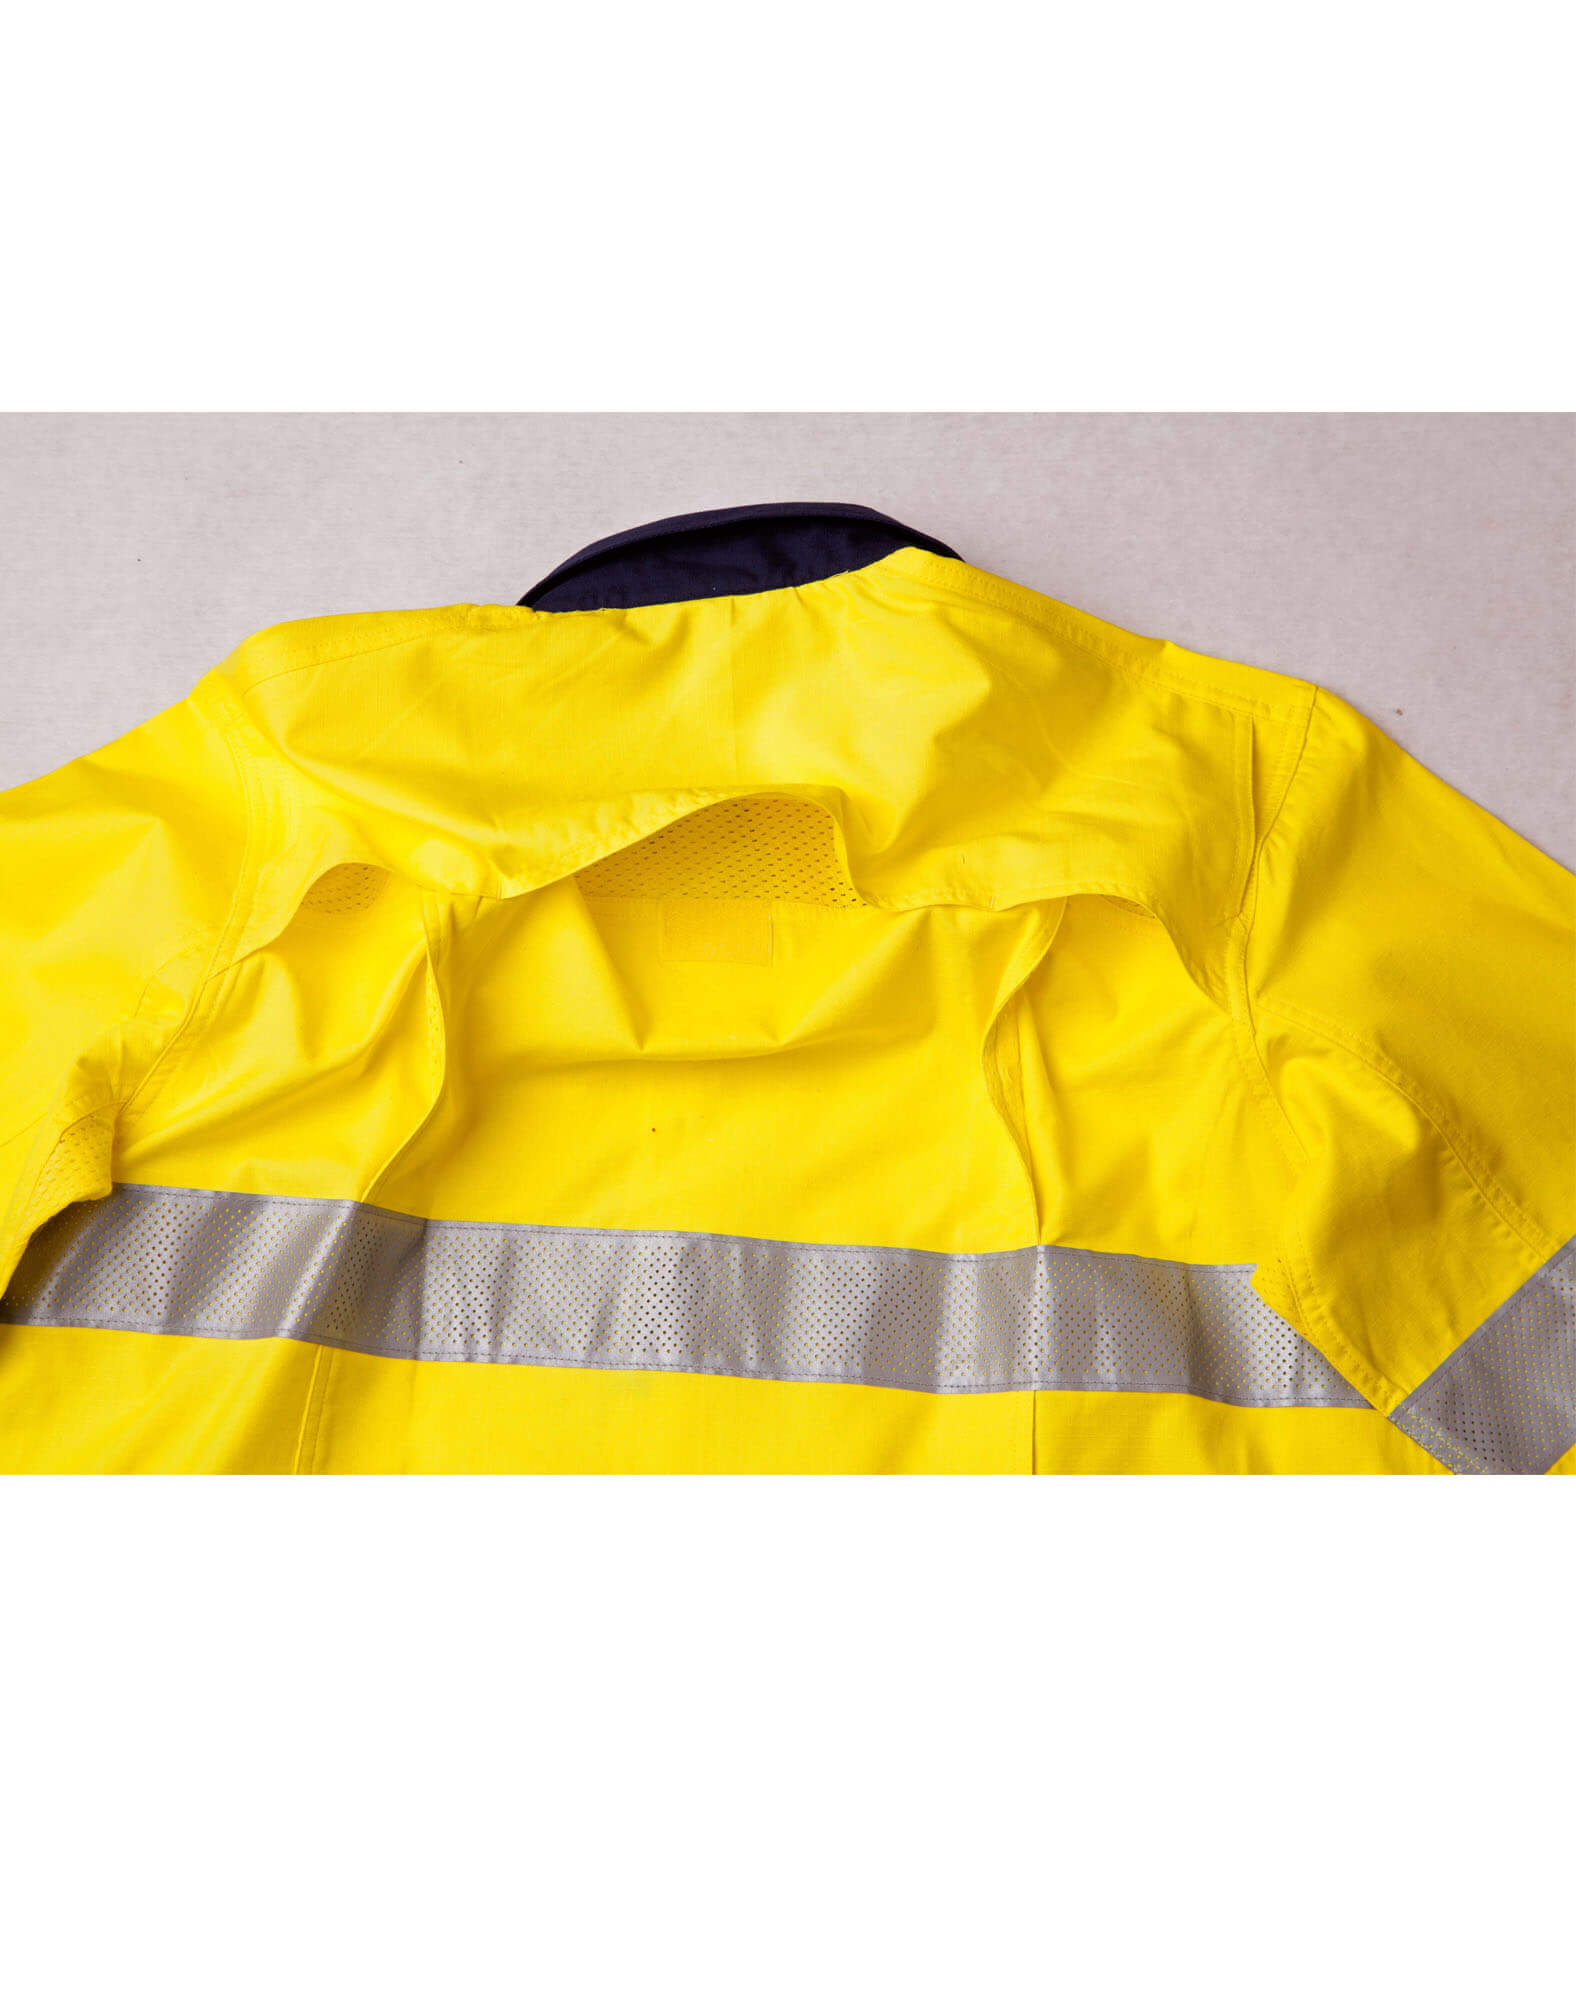 WS Unisex Hi Vis Cotton Rip-Stop Long Sleeve Safety Shirt with 3M Tape SW69